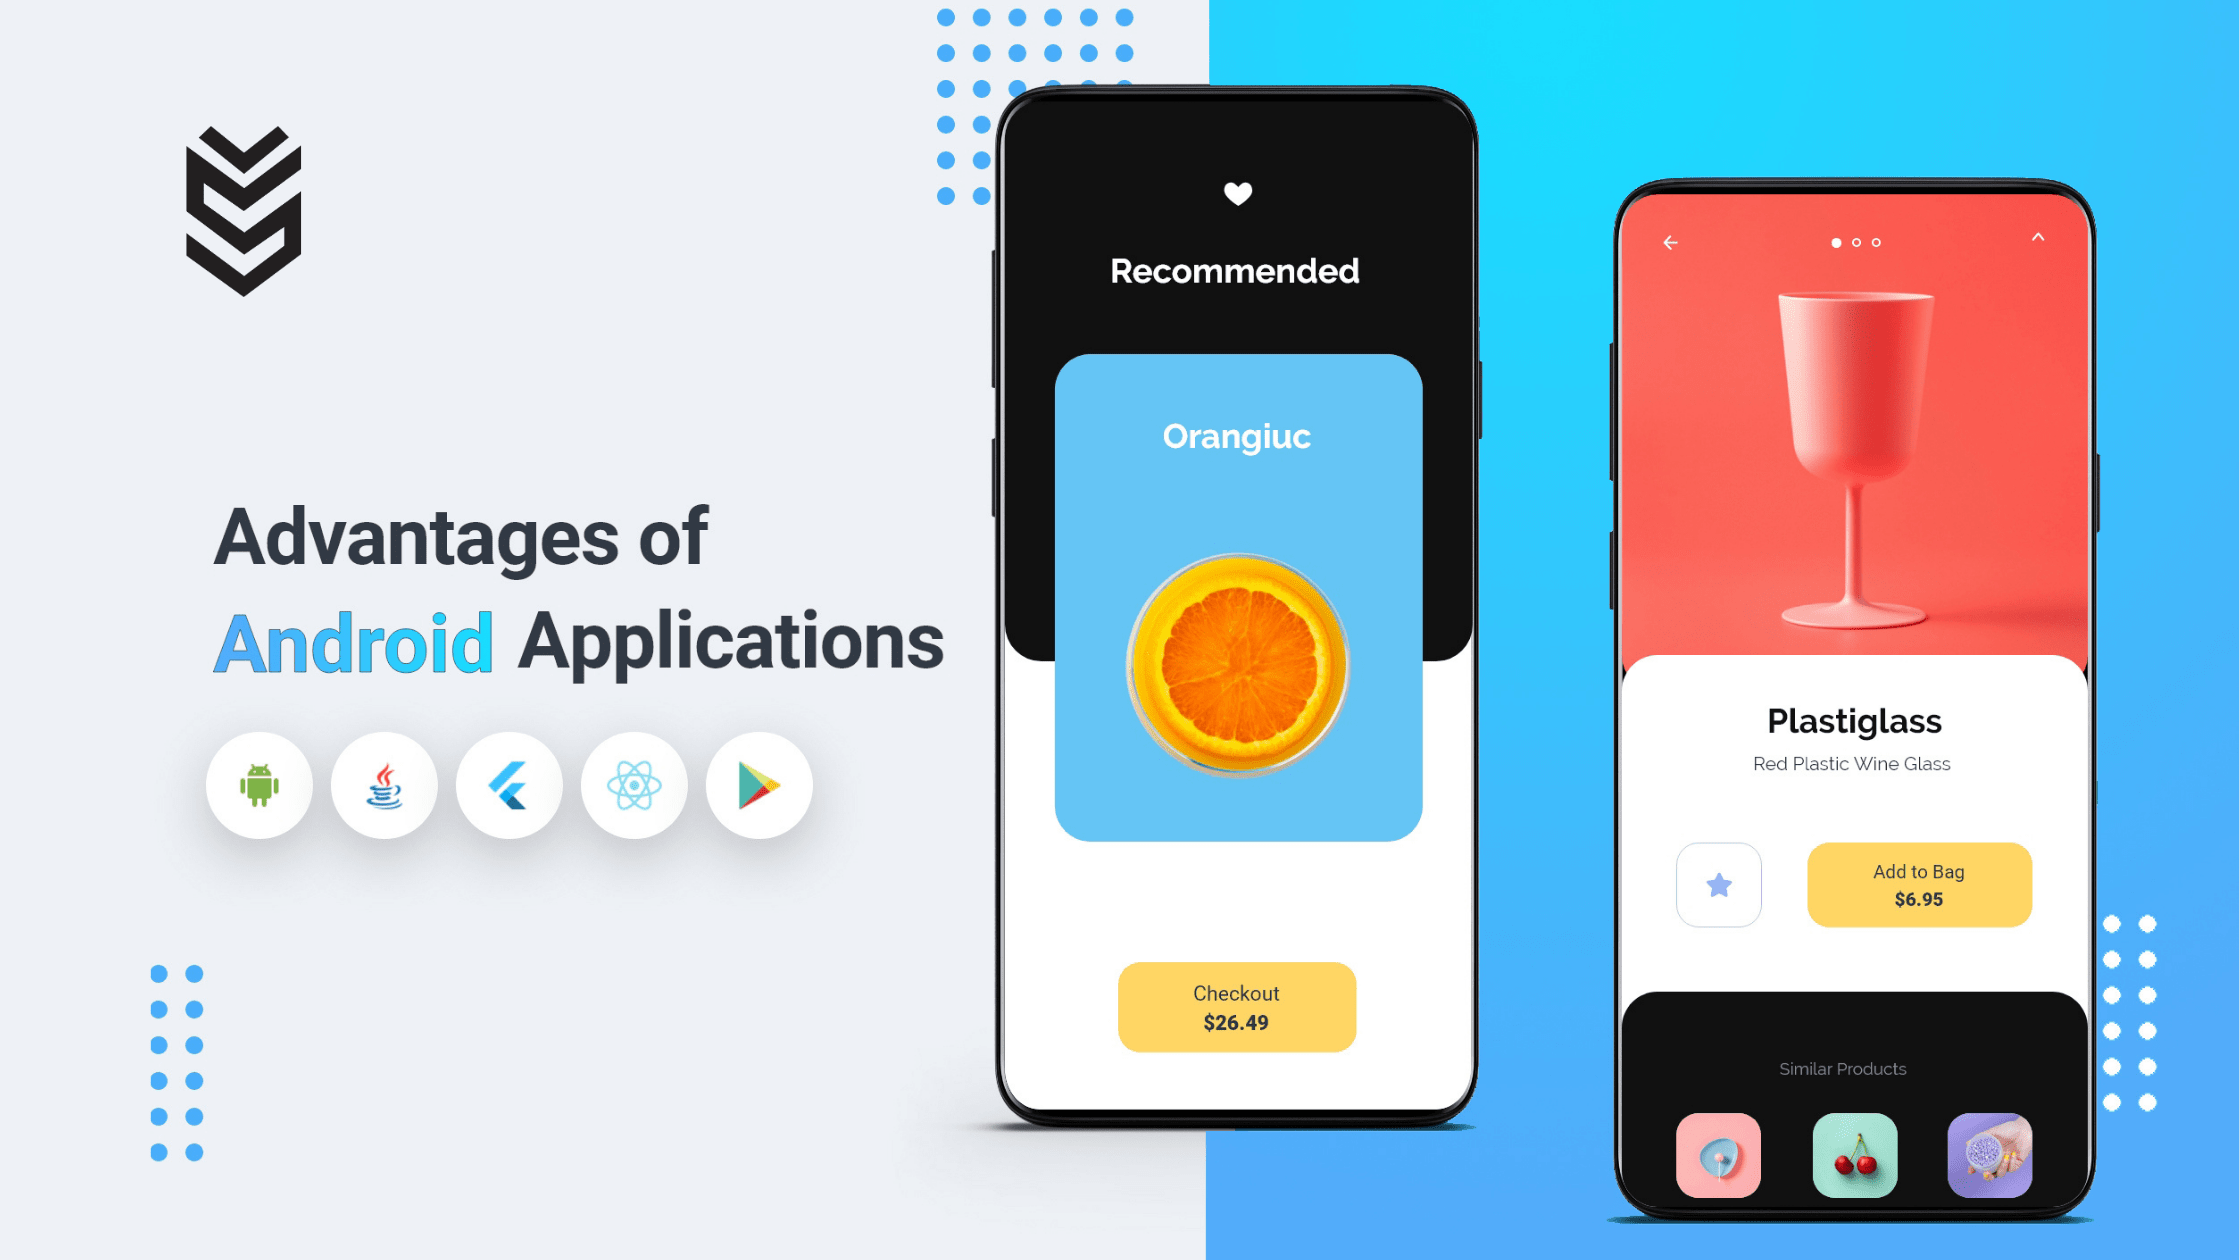 Advantages of Android Application